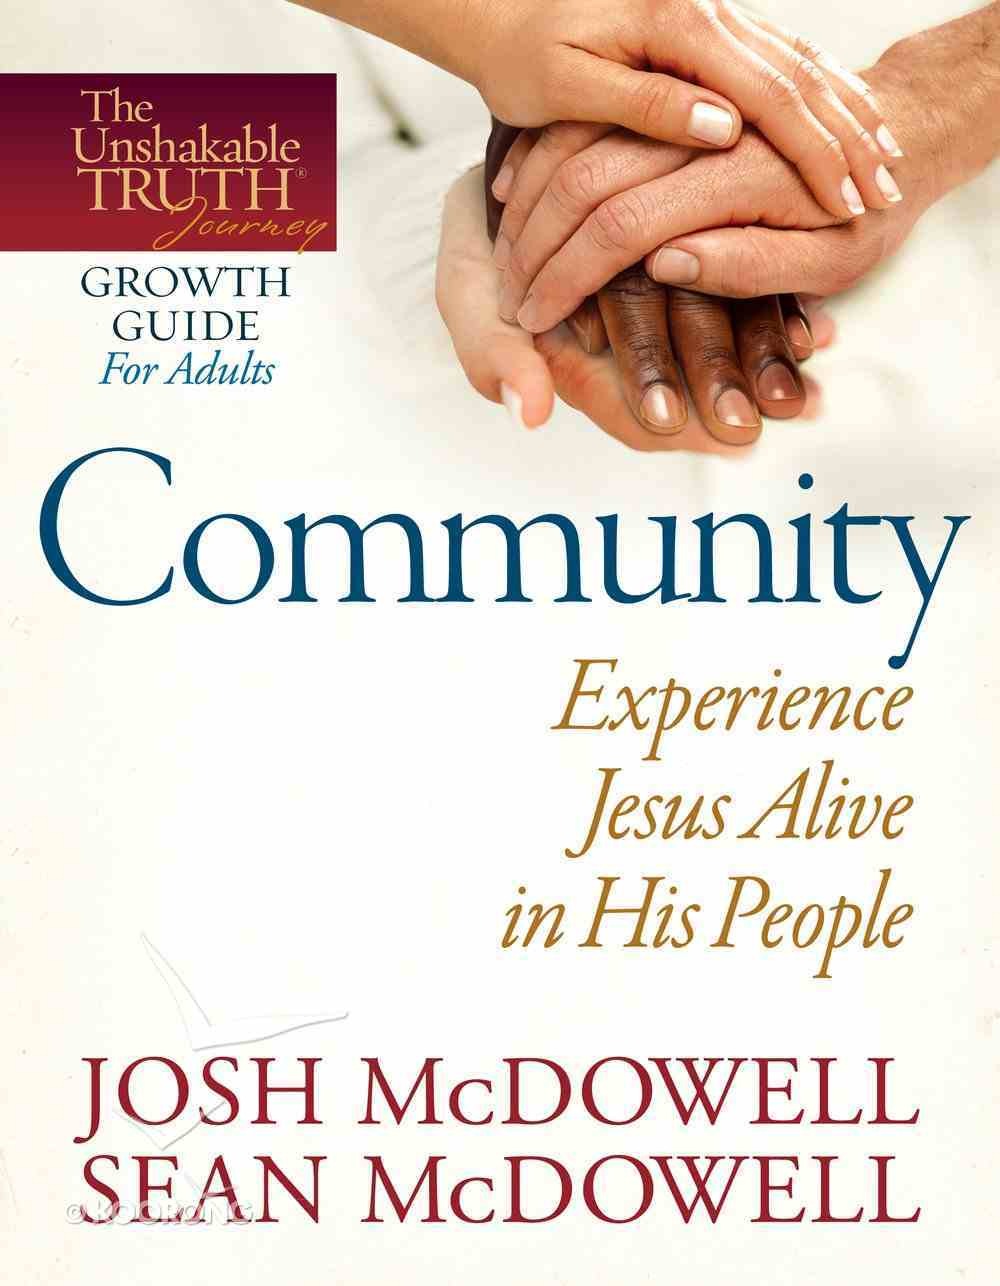 Unshakable Truth Journey: Community (Growth Guide) eBook